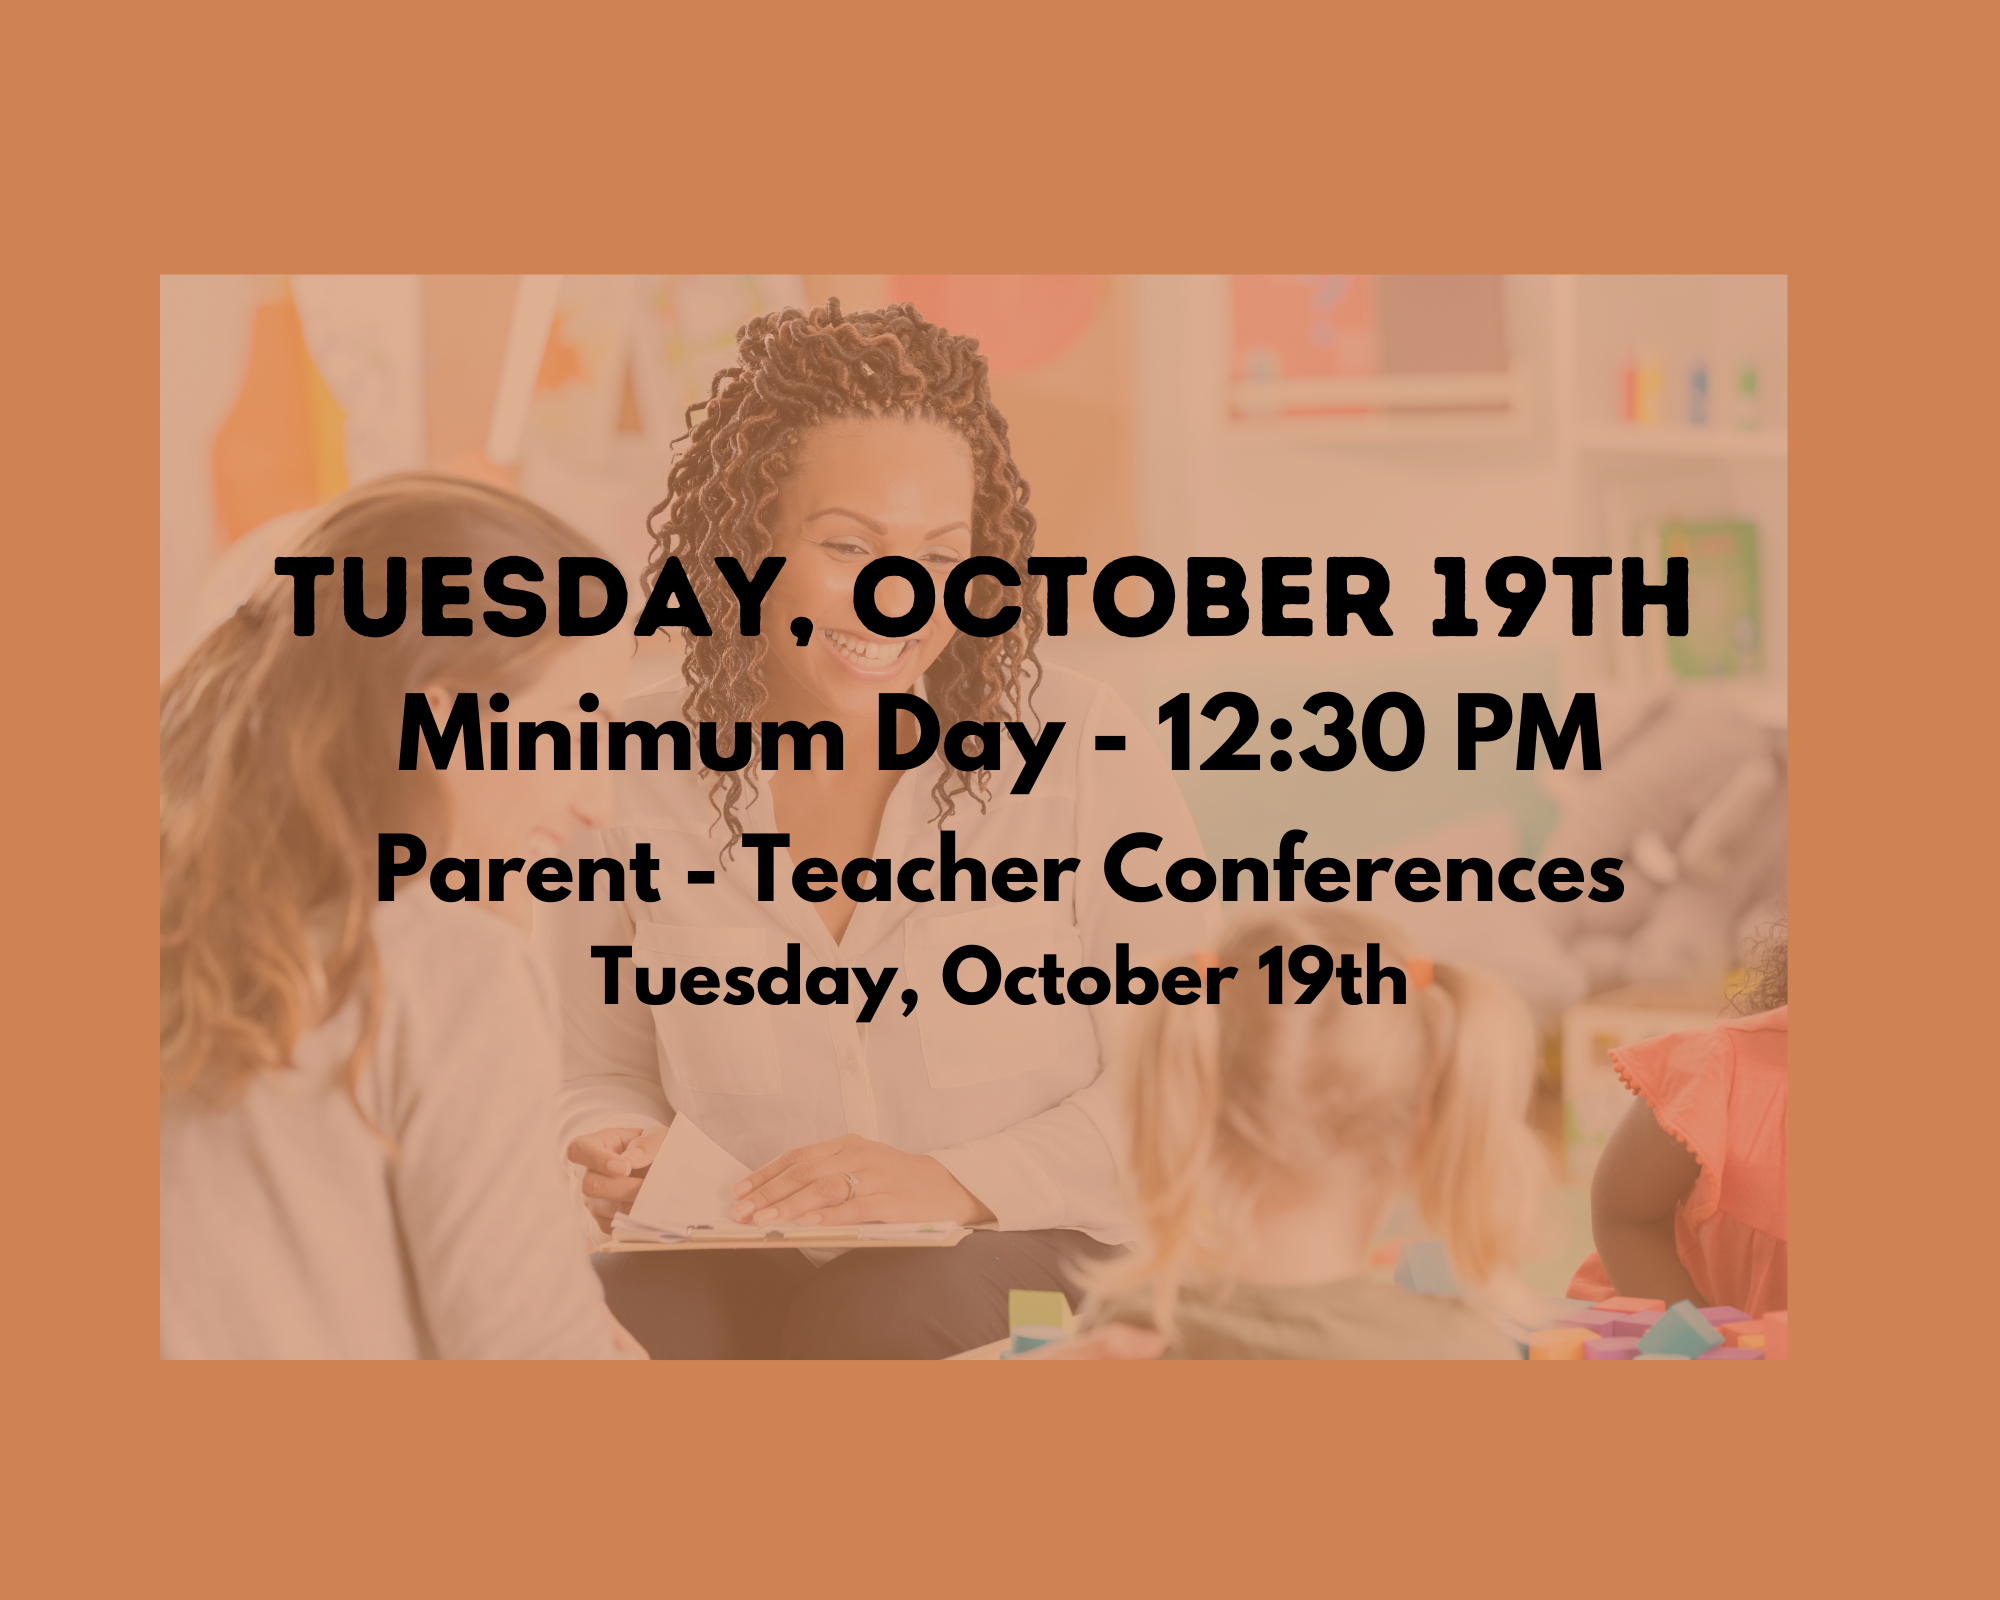 Tuesday, October 19th Minimum Day - 12:30 PM